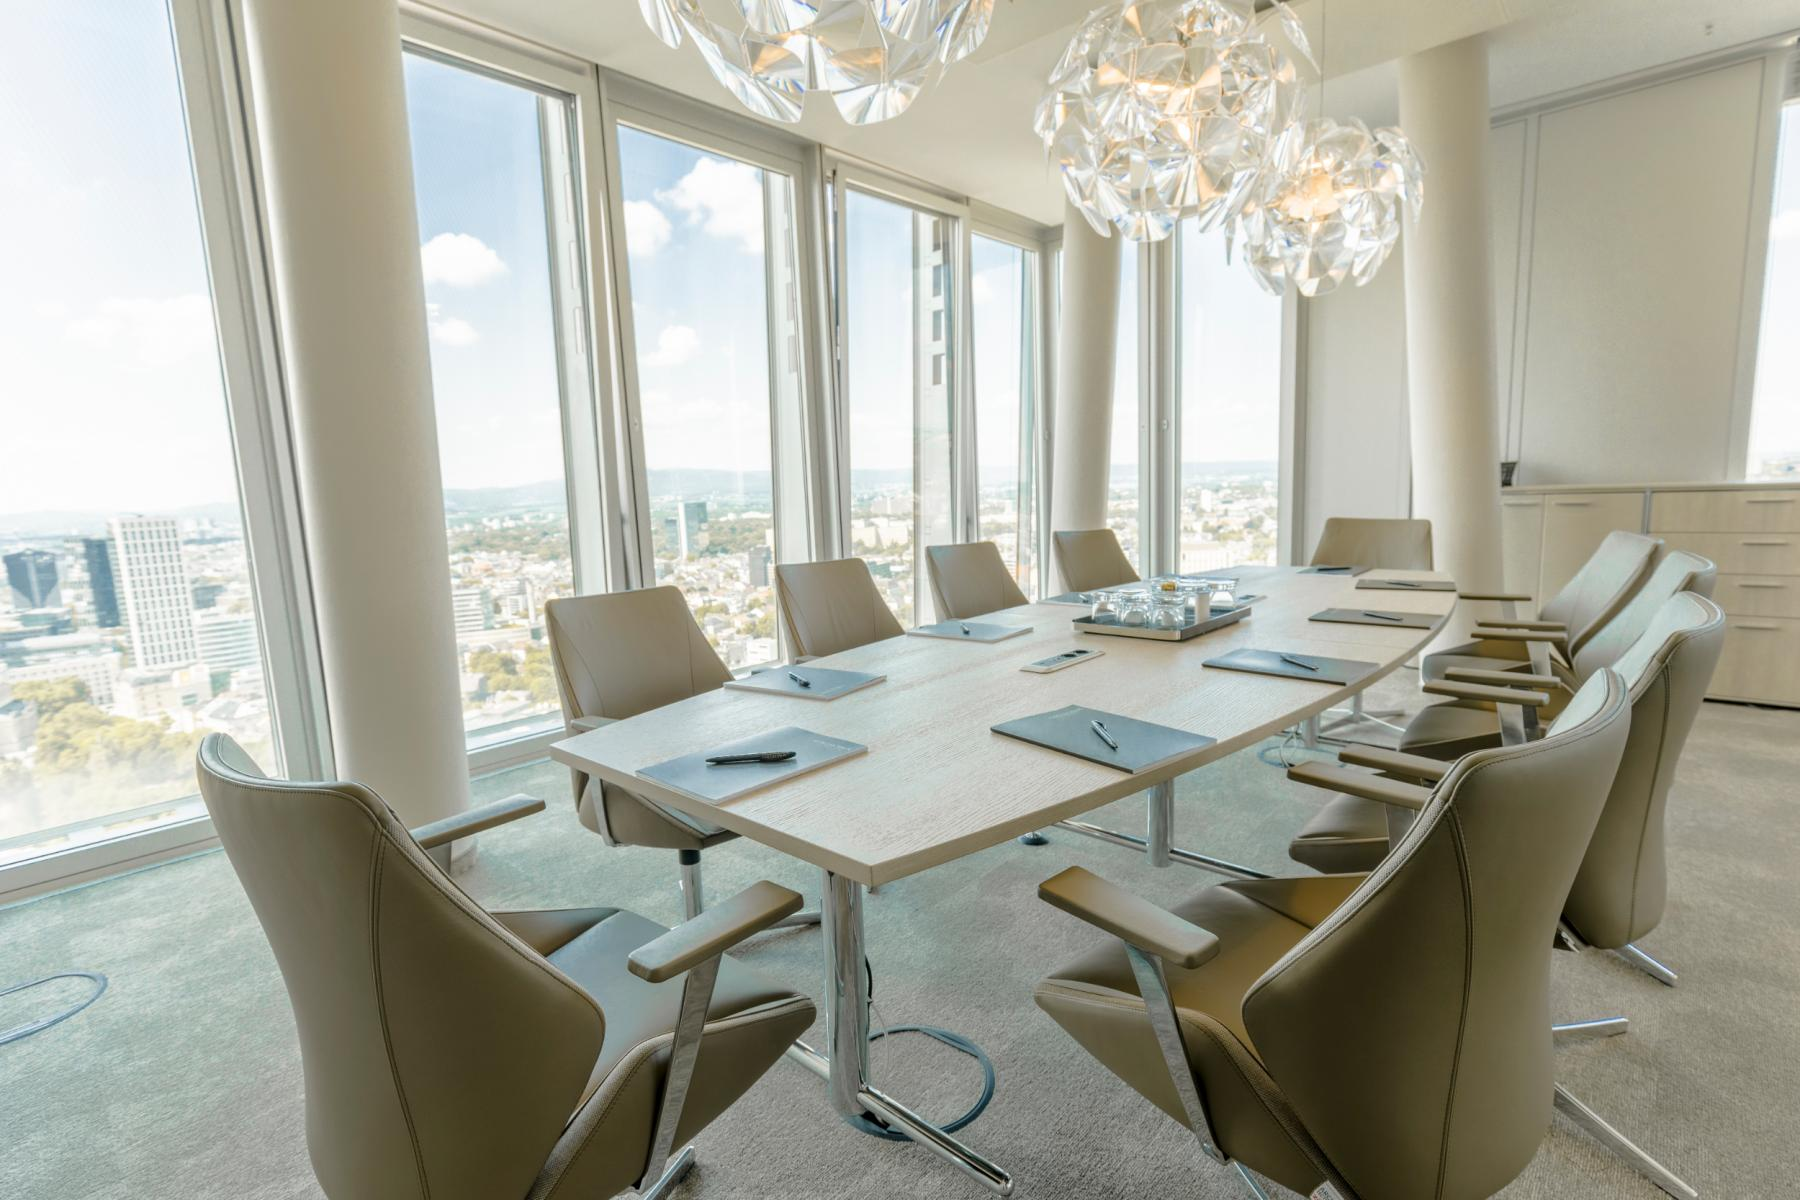 Great conference rooms in the office building in Frankfurt